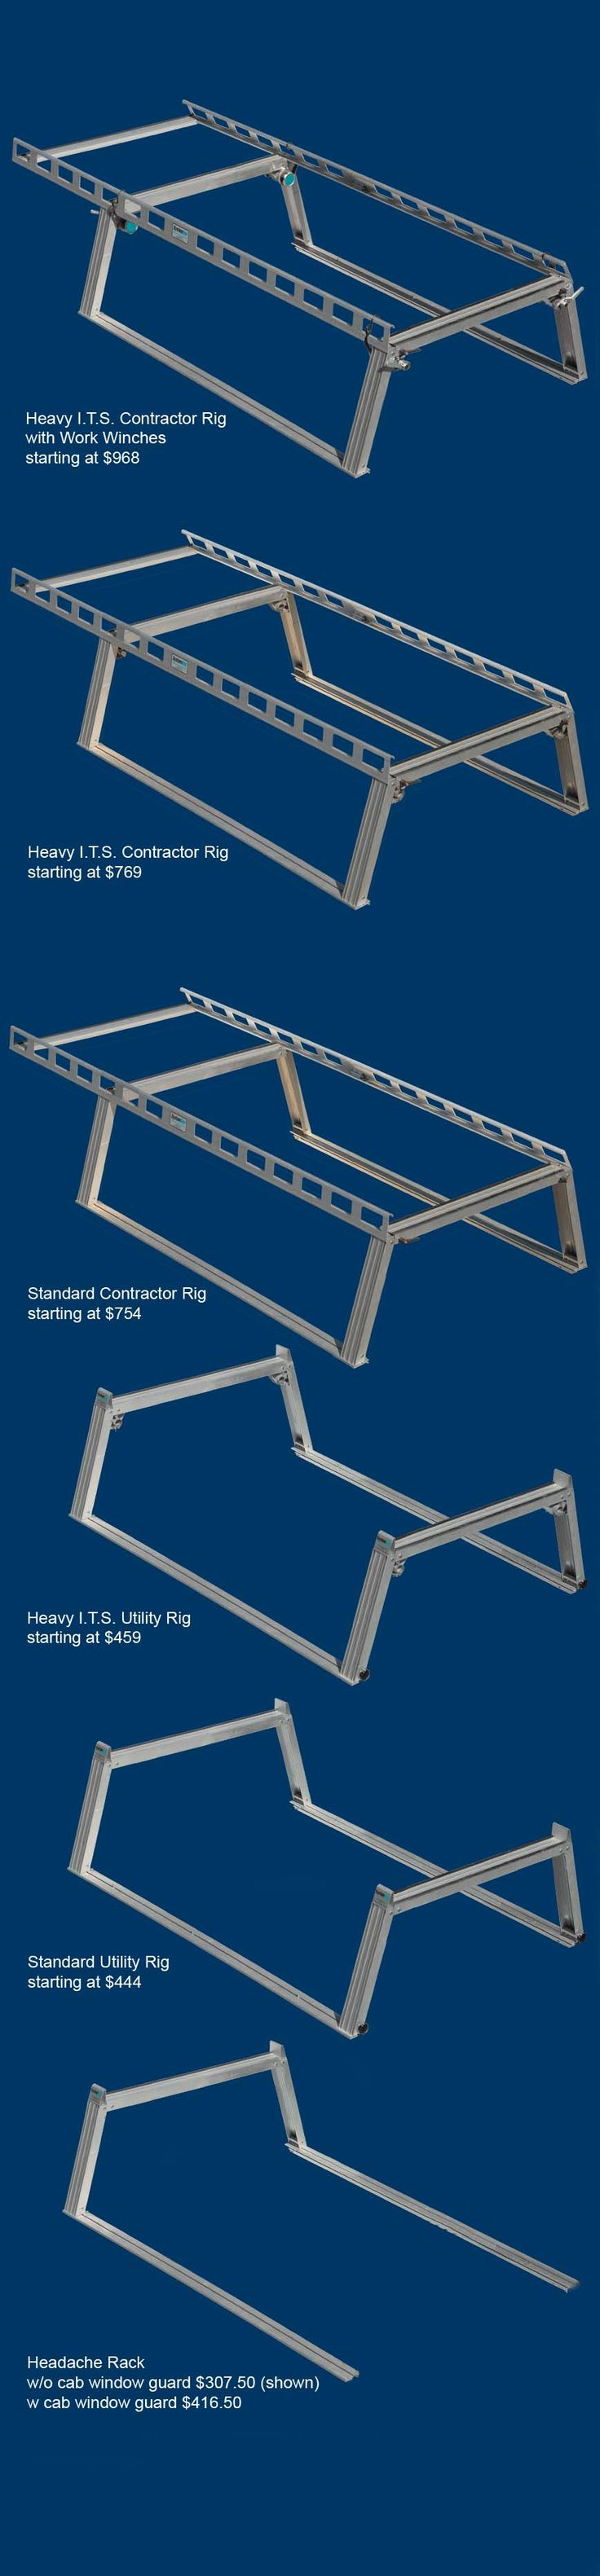 Service body / utility body ladder racks / truck racks overview